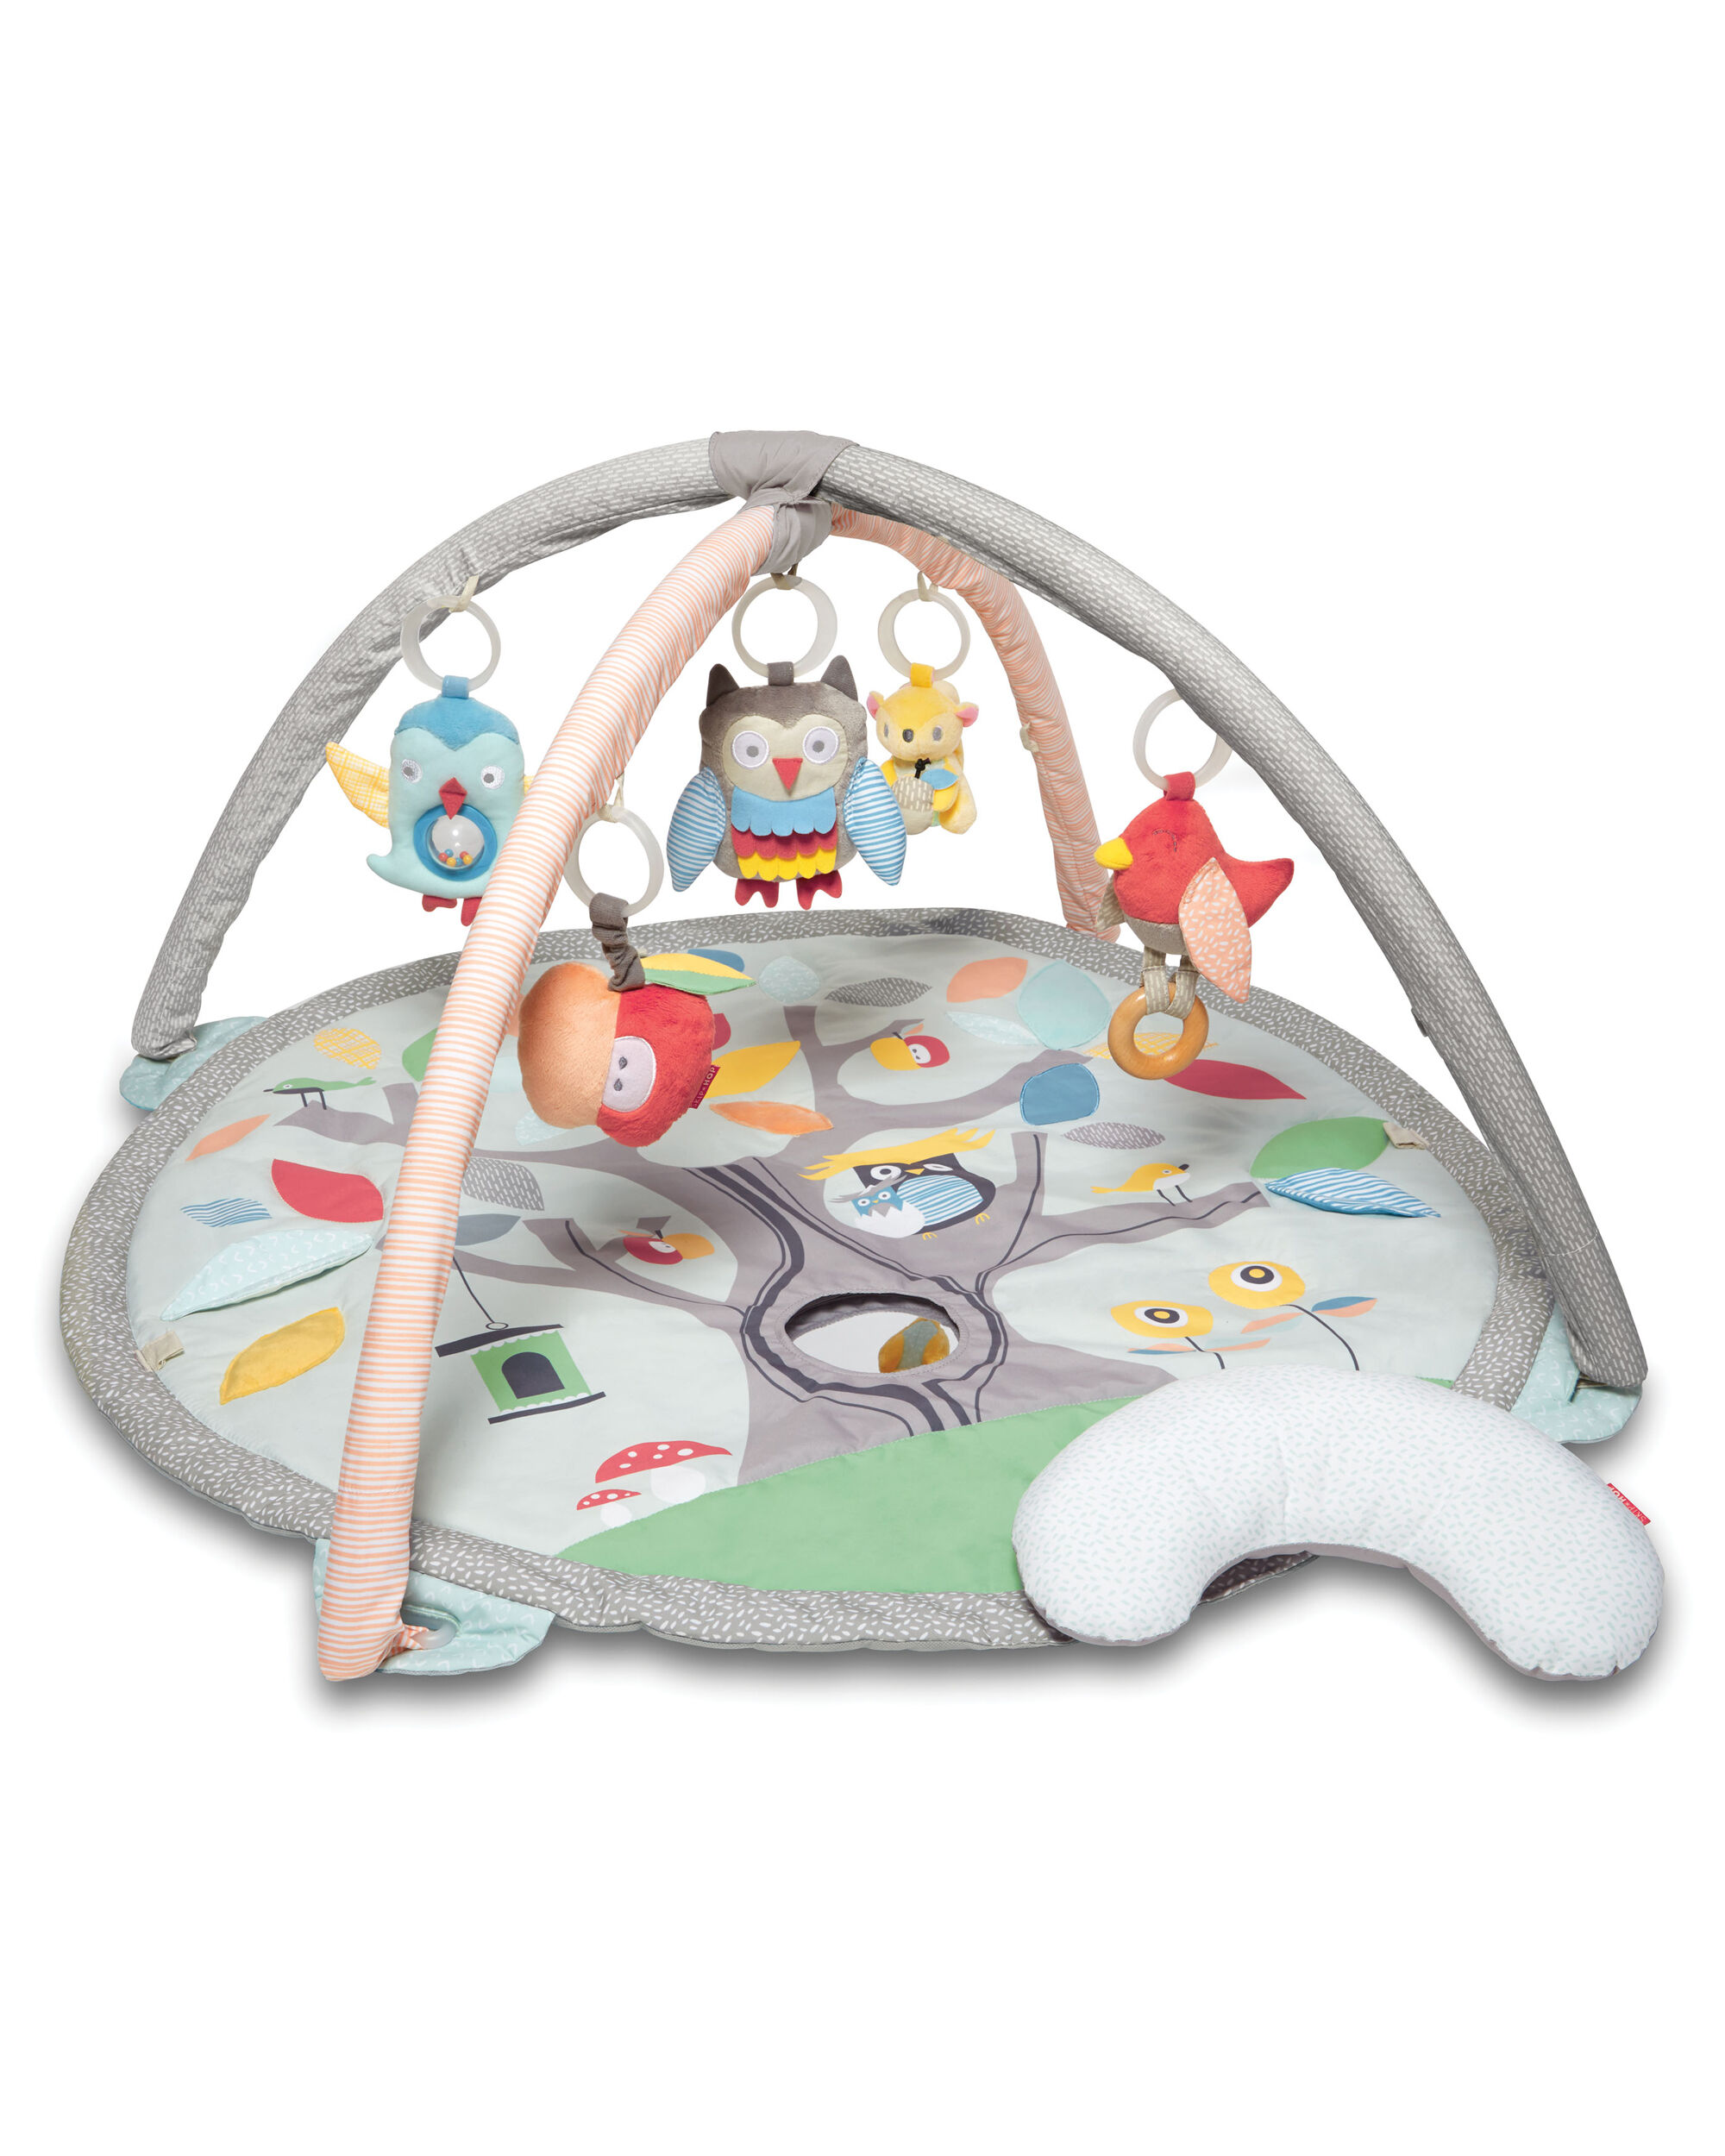 Spielbogen Baby Treetop Friends Baby Activity Gym